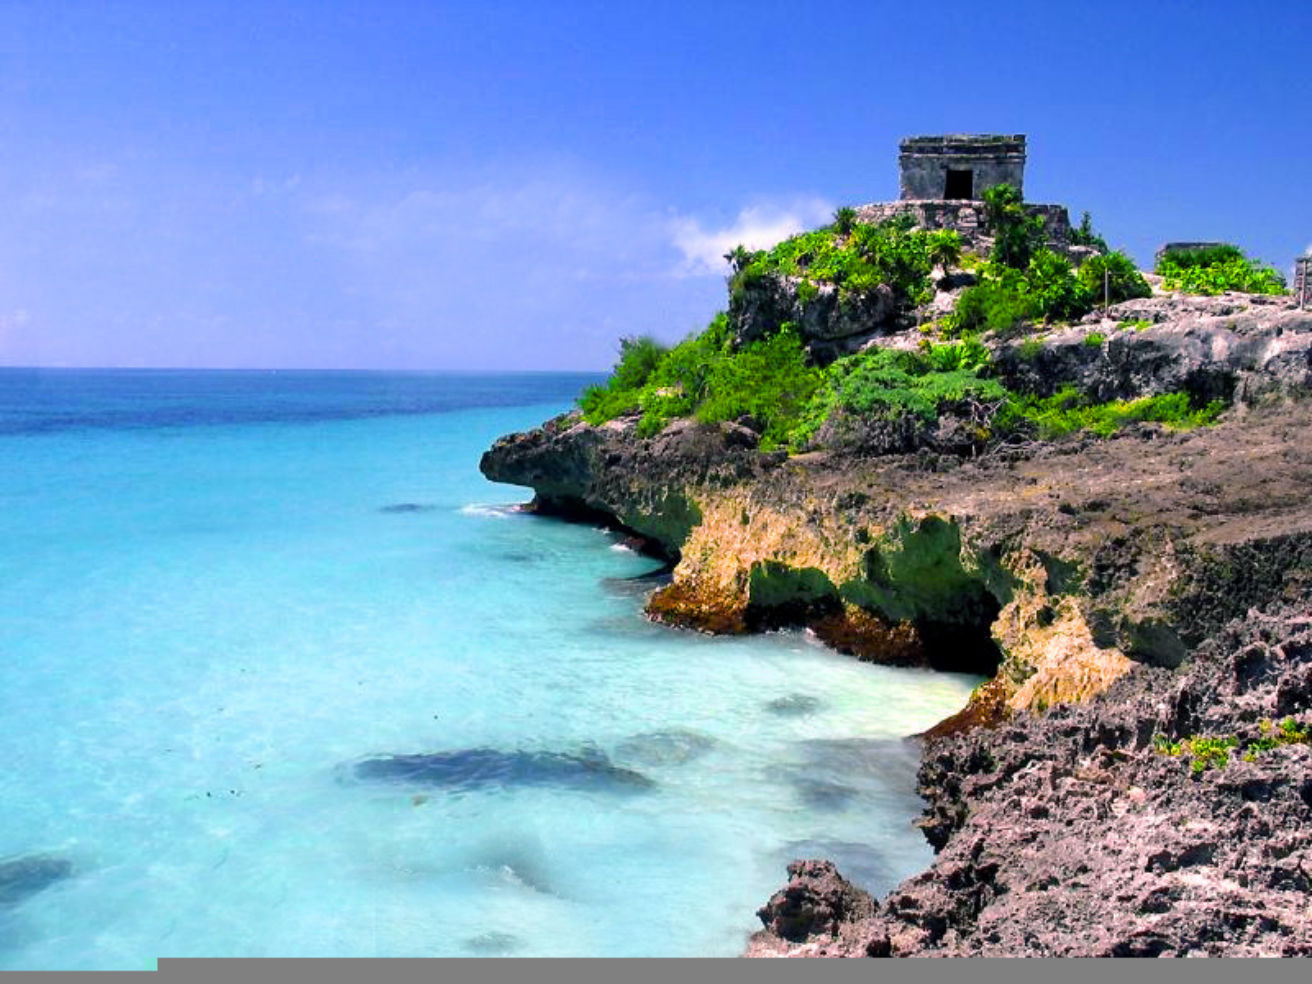 A beautiful beach scene in Tulum, Mexico